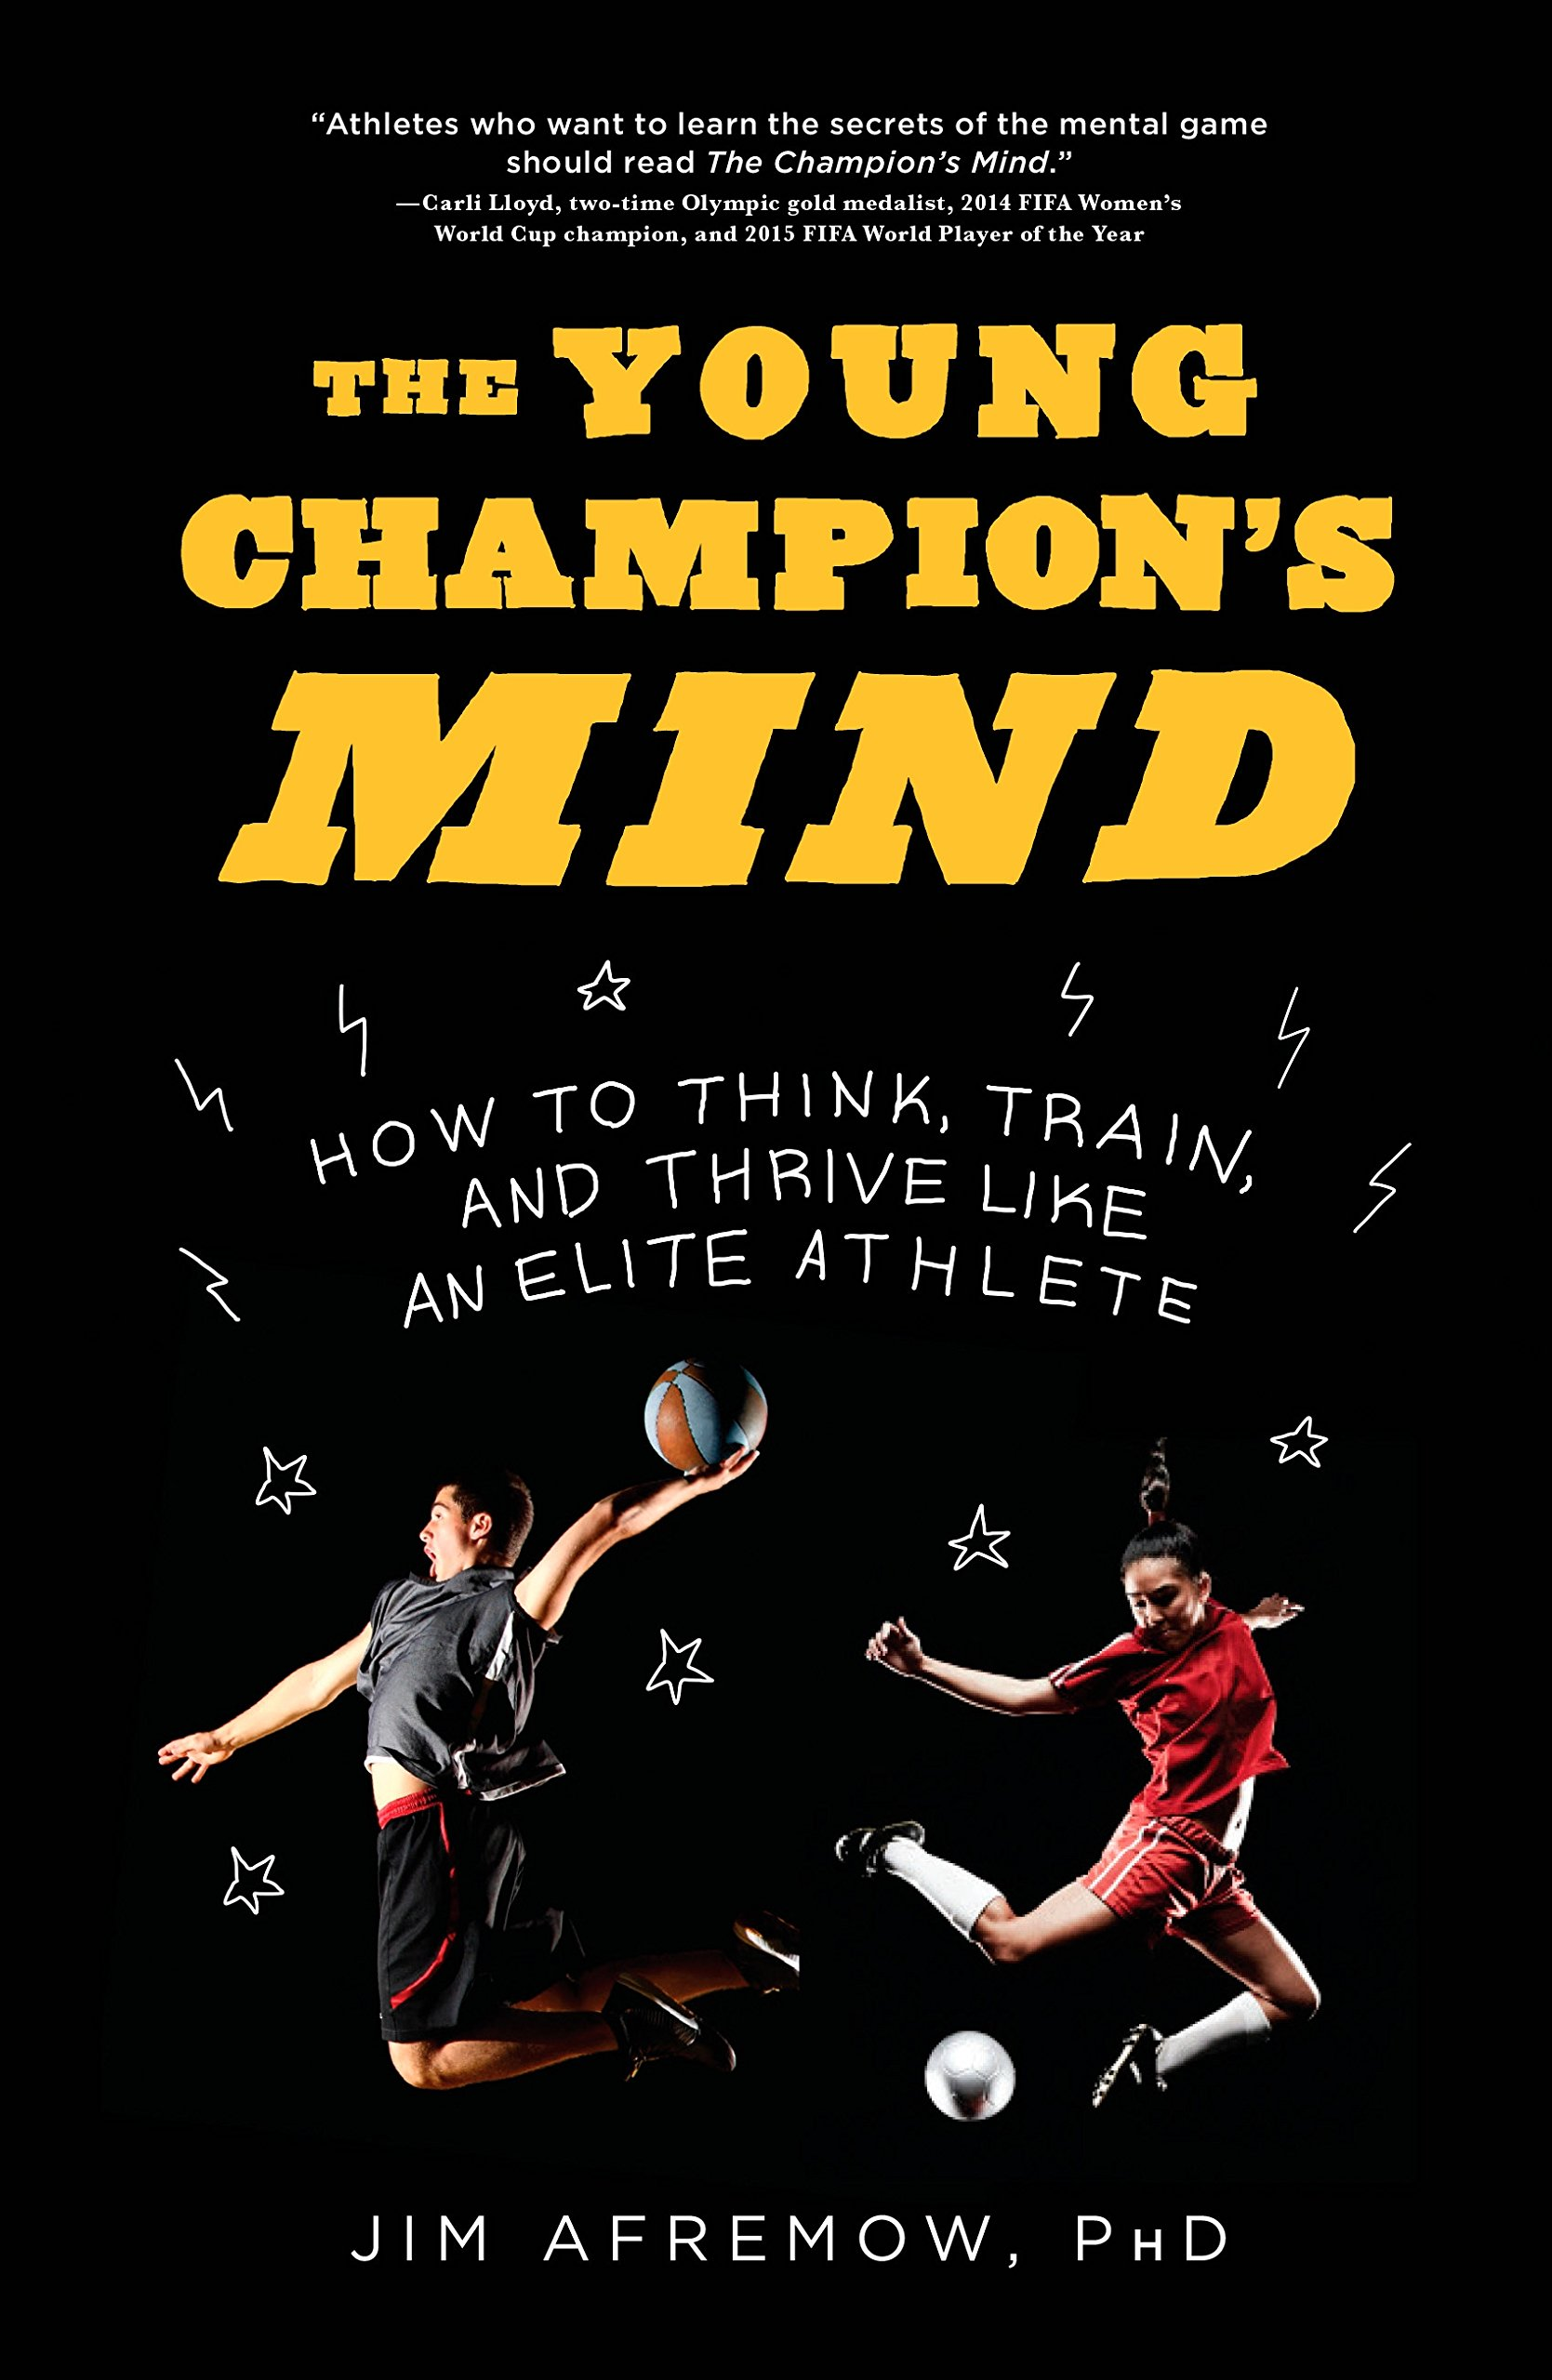 Image OfThe Young Champion's Mind: How To Think, Train, And Thrive Like An Elite Athlete